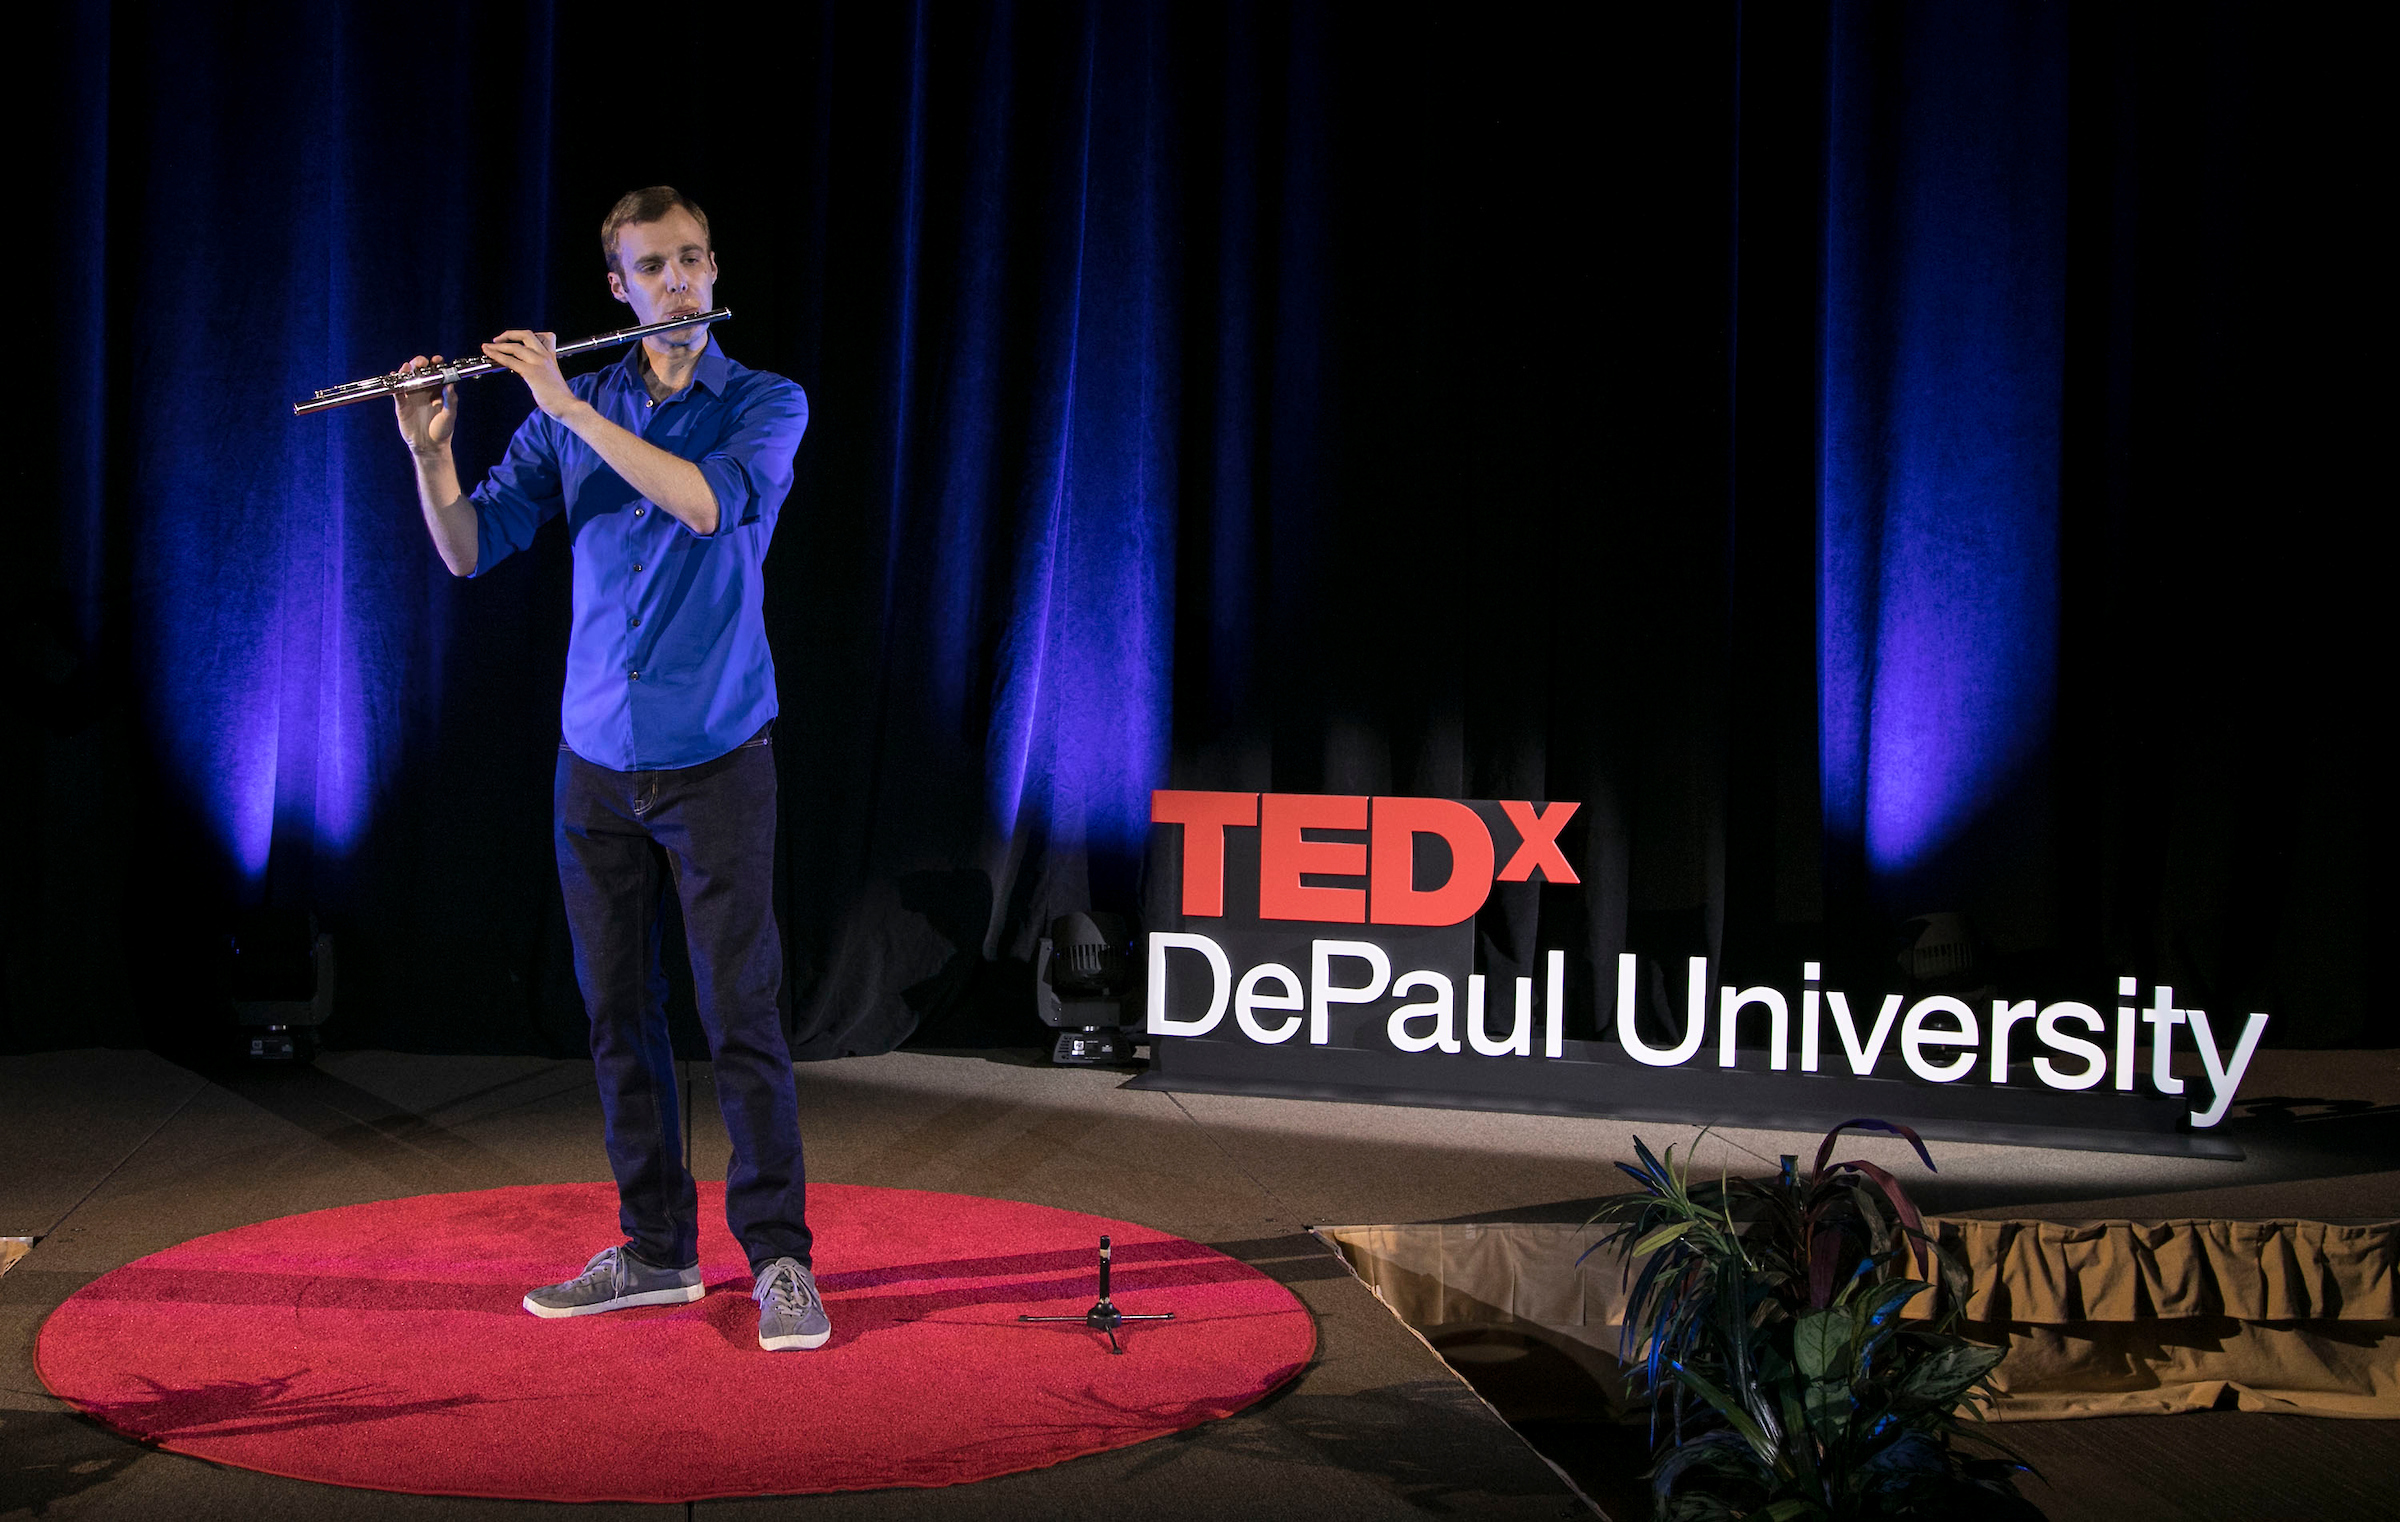 Break free of the routine on Thursday, May 28, and join flutist, DePaul School of Music alumnus and 2018 TEDxDePaulUniversity speaker James Brinkmann for an interactive concert. At 12:30 p.m., Brinkmann will perform three solo pieces, and participants will be led through a creative exercise to depict their experience with his music through words or drawings.